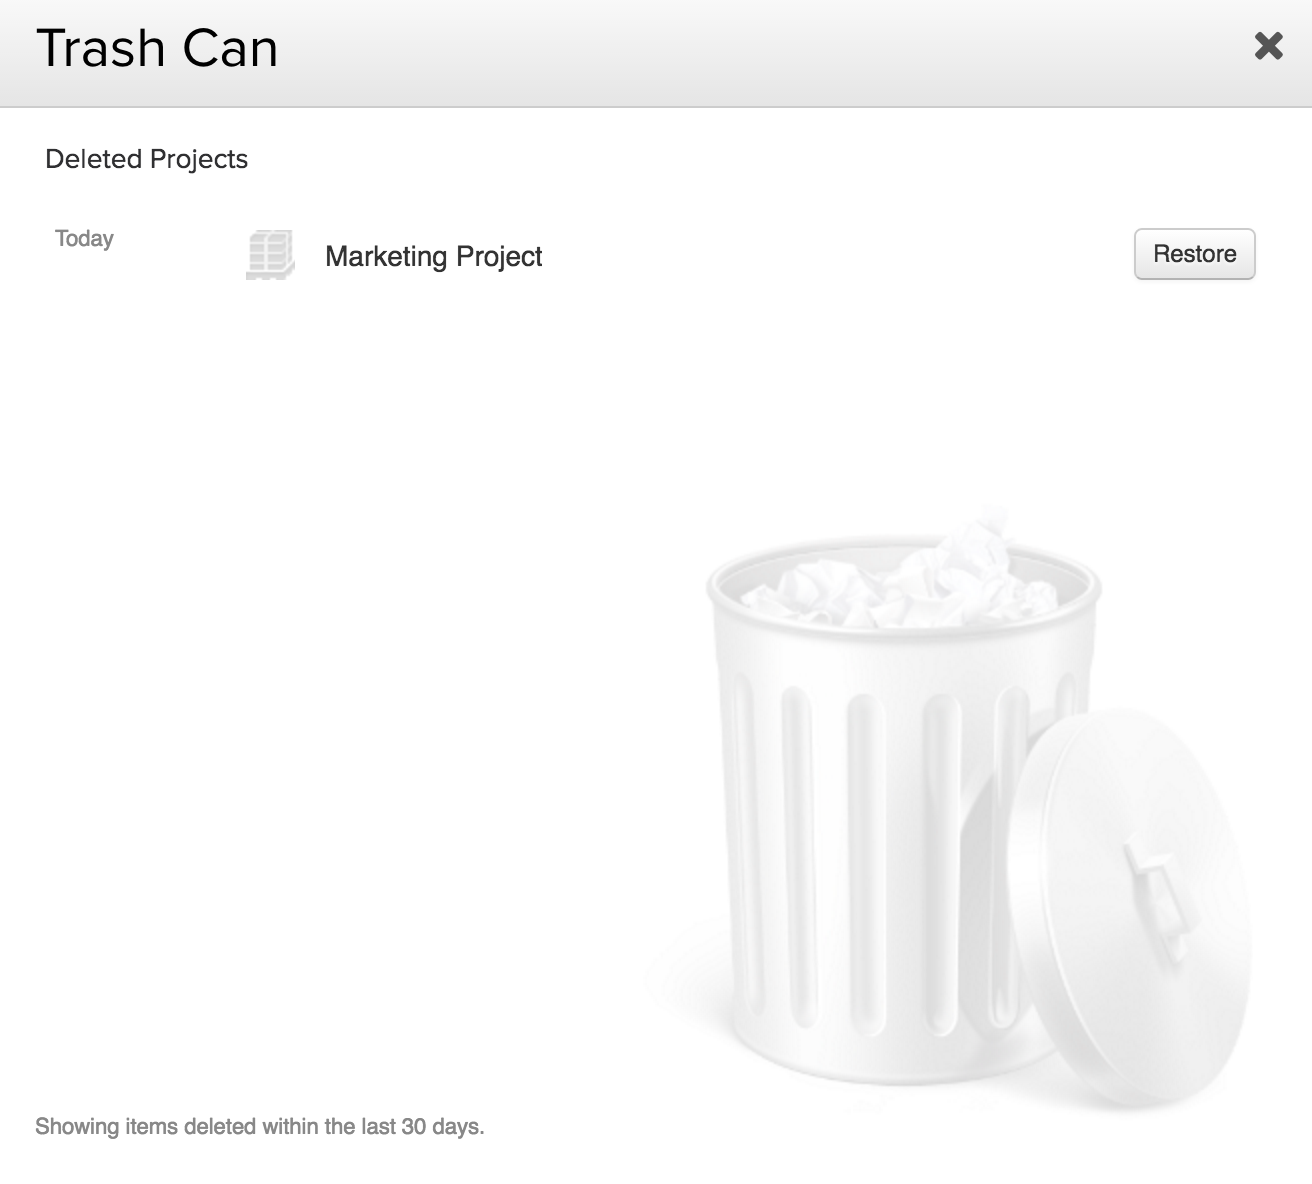 Restore a project from trash can